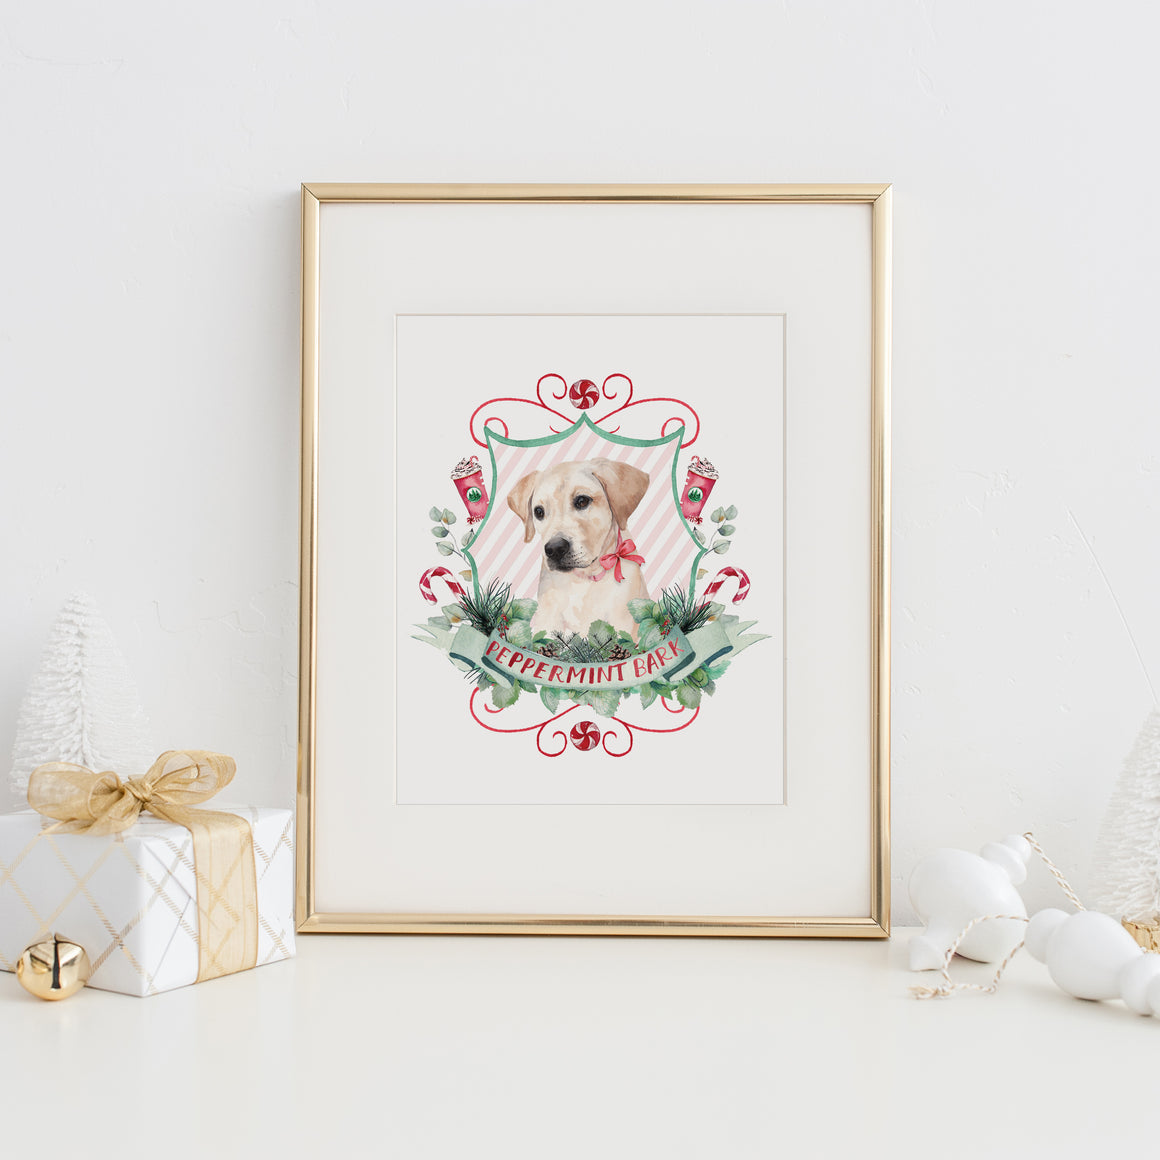 Peppermint Bark Art Print